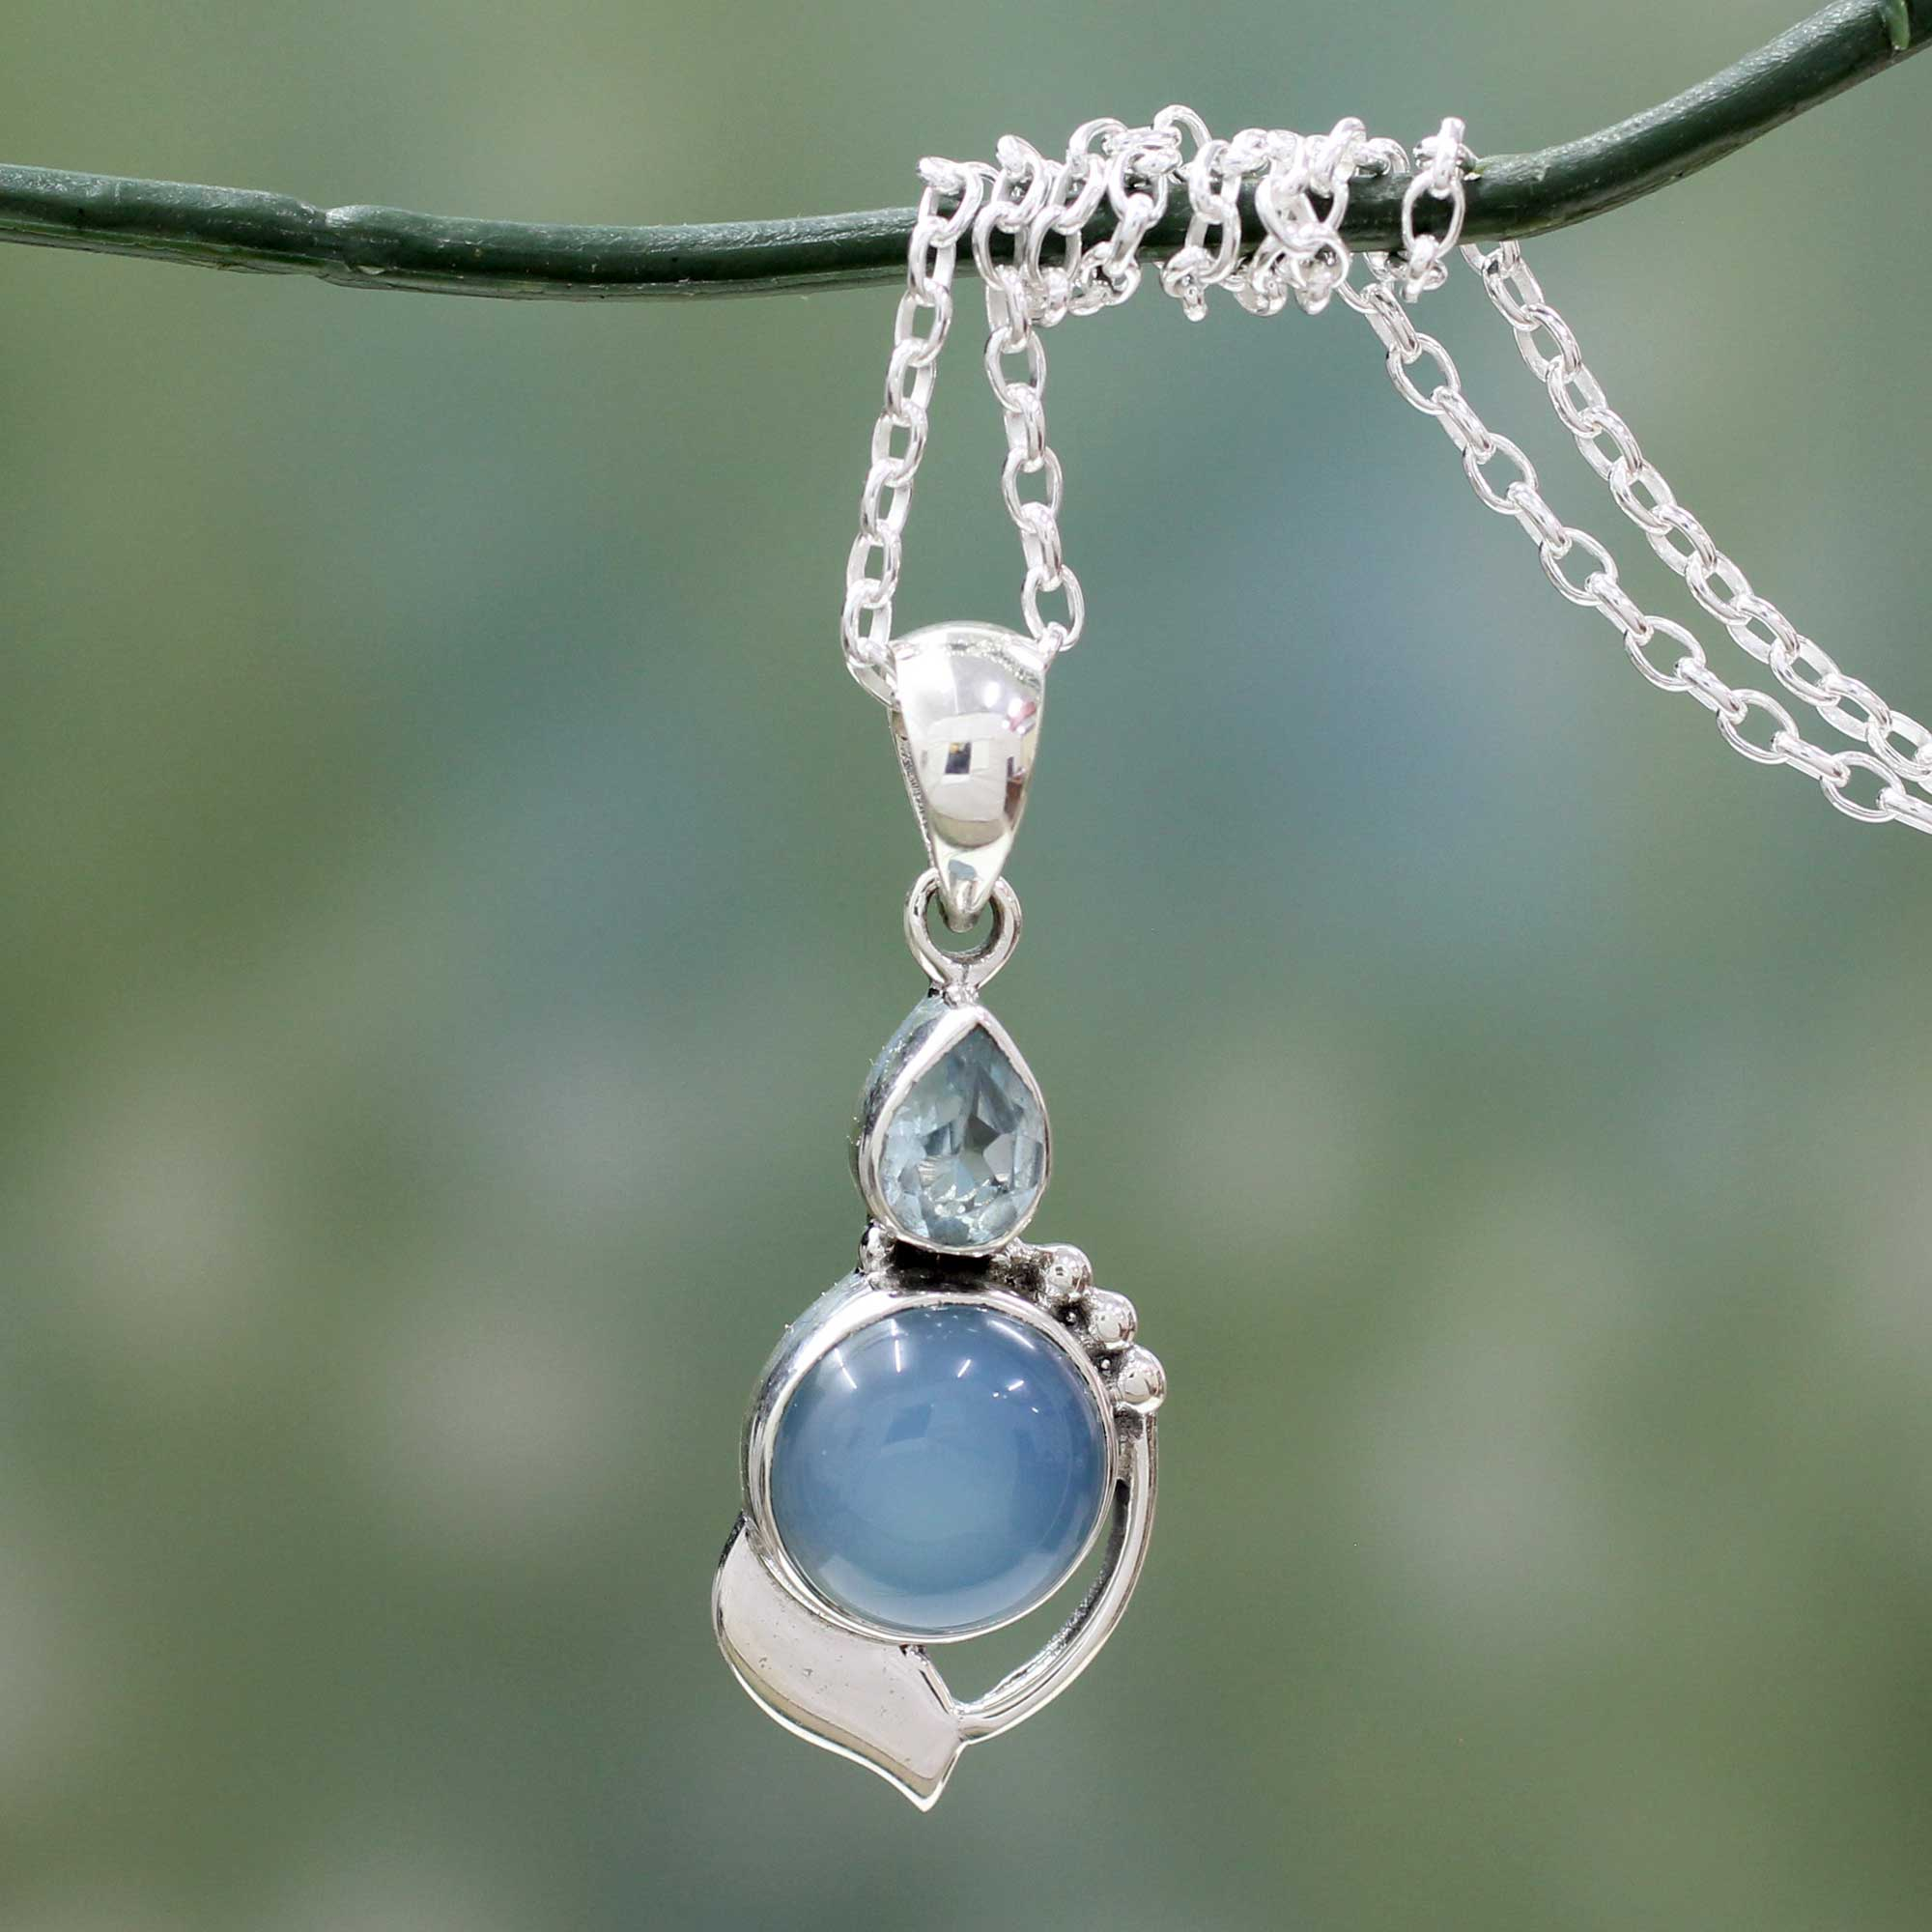 necklaces joyas water de chalcedony pendant drop venta en addictedto online